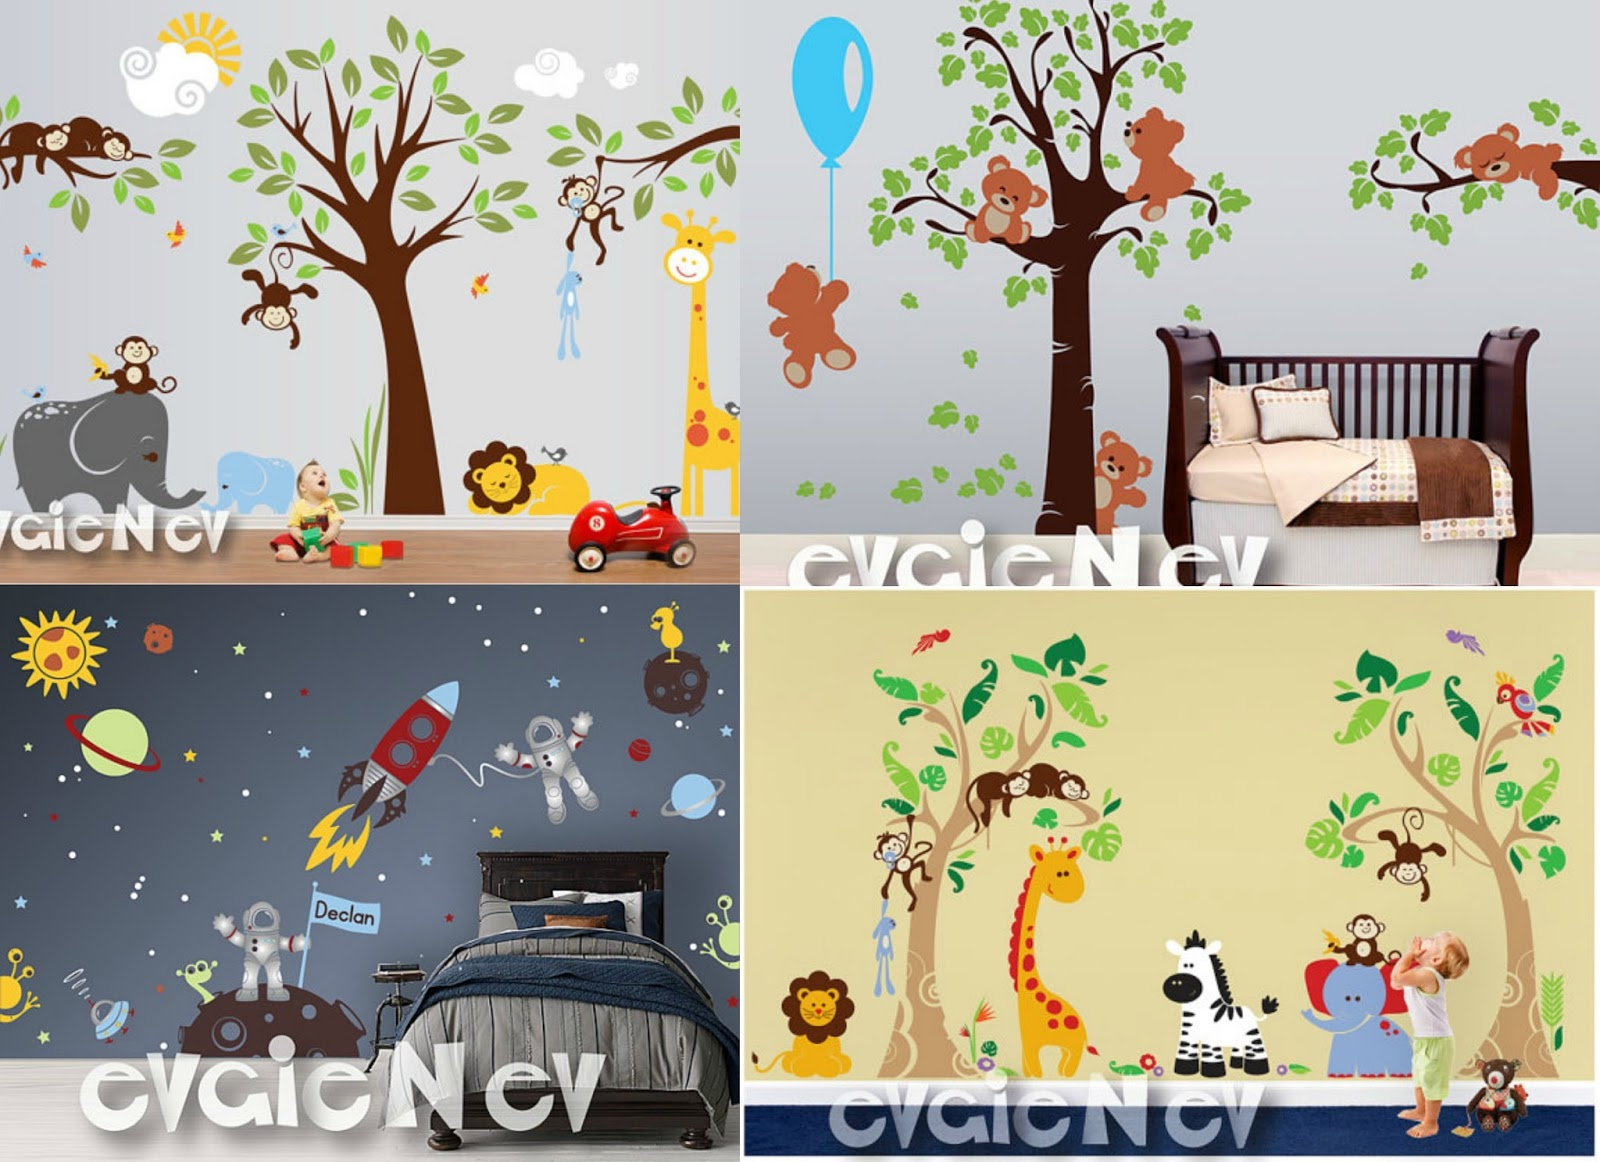 Hanging Off The Wire: EvgieNev Wall Decal Nursery Giveaway 9/11 - 9/29